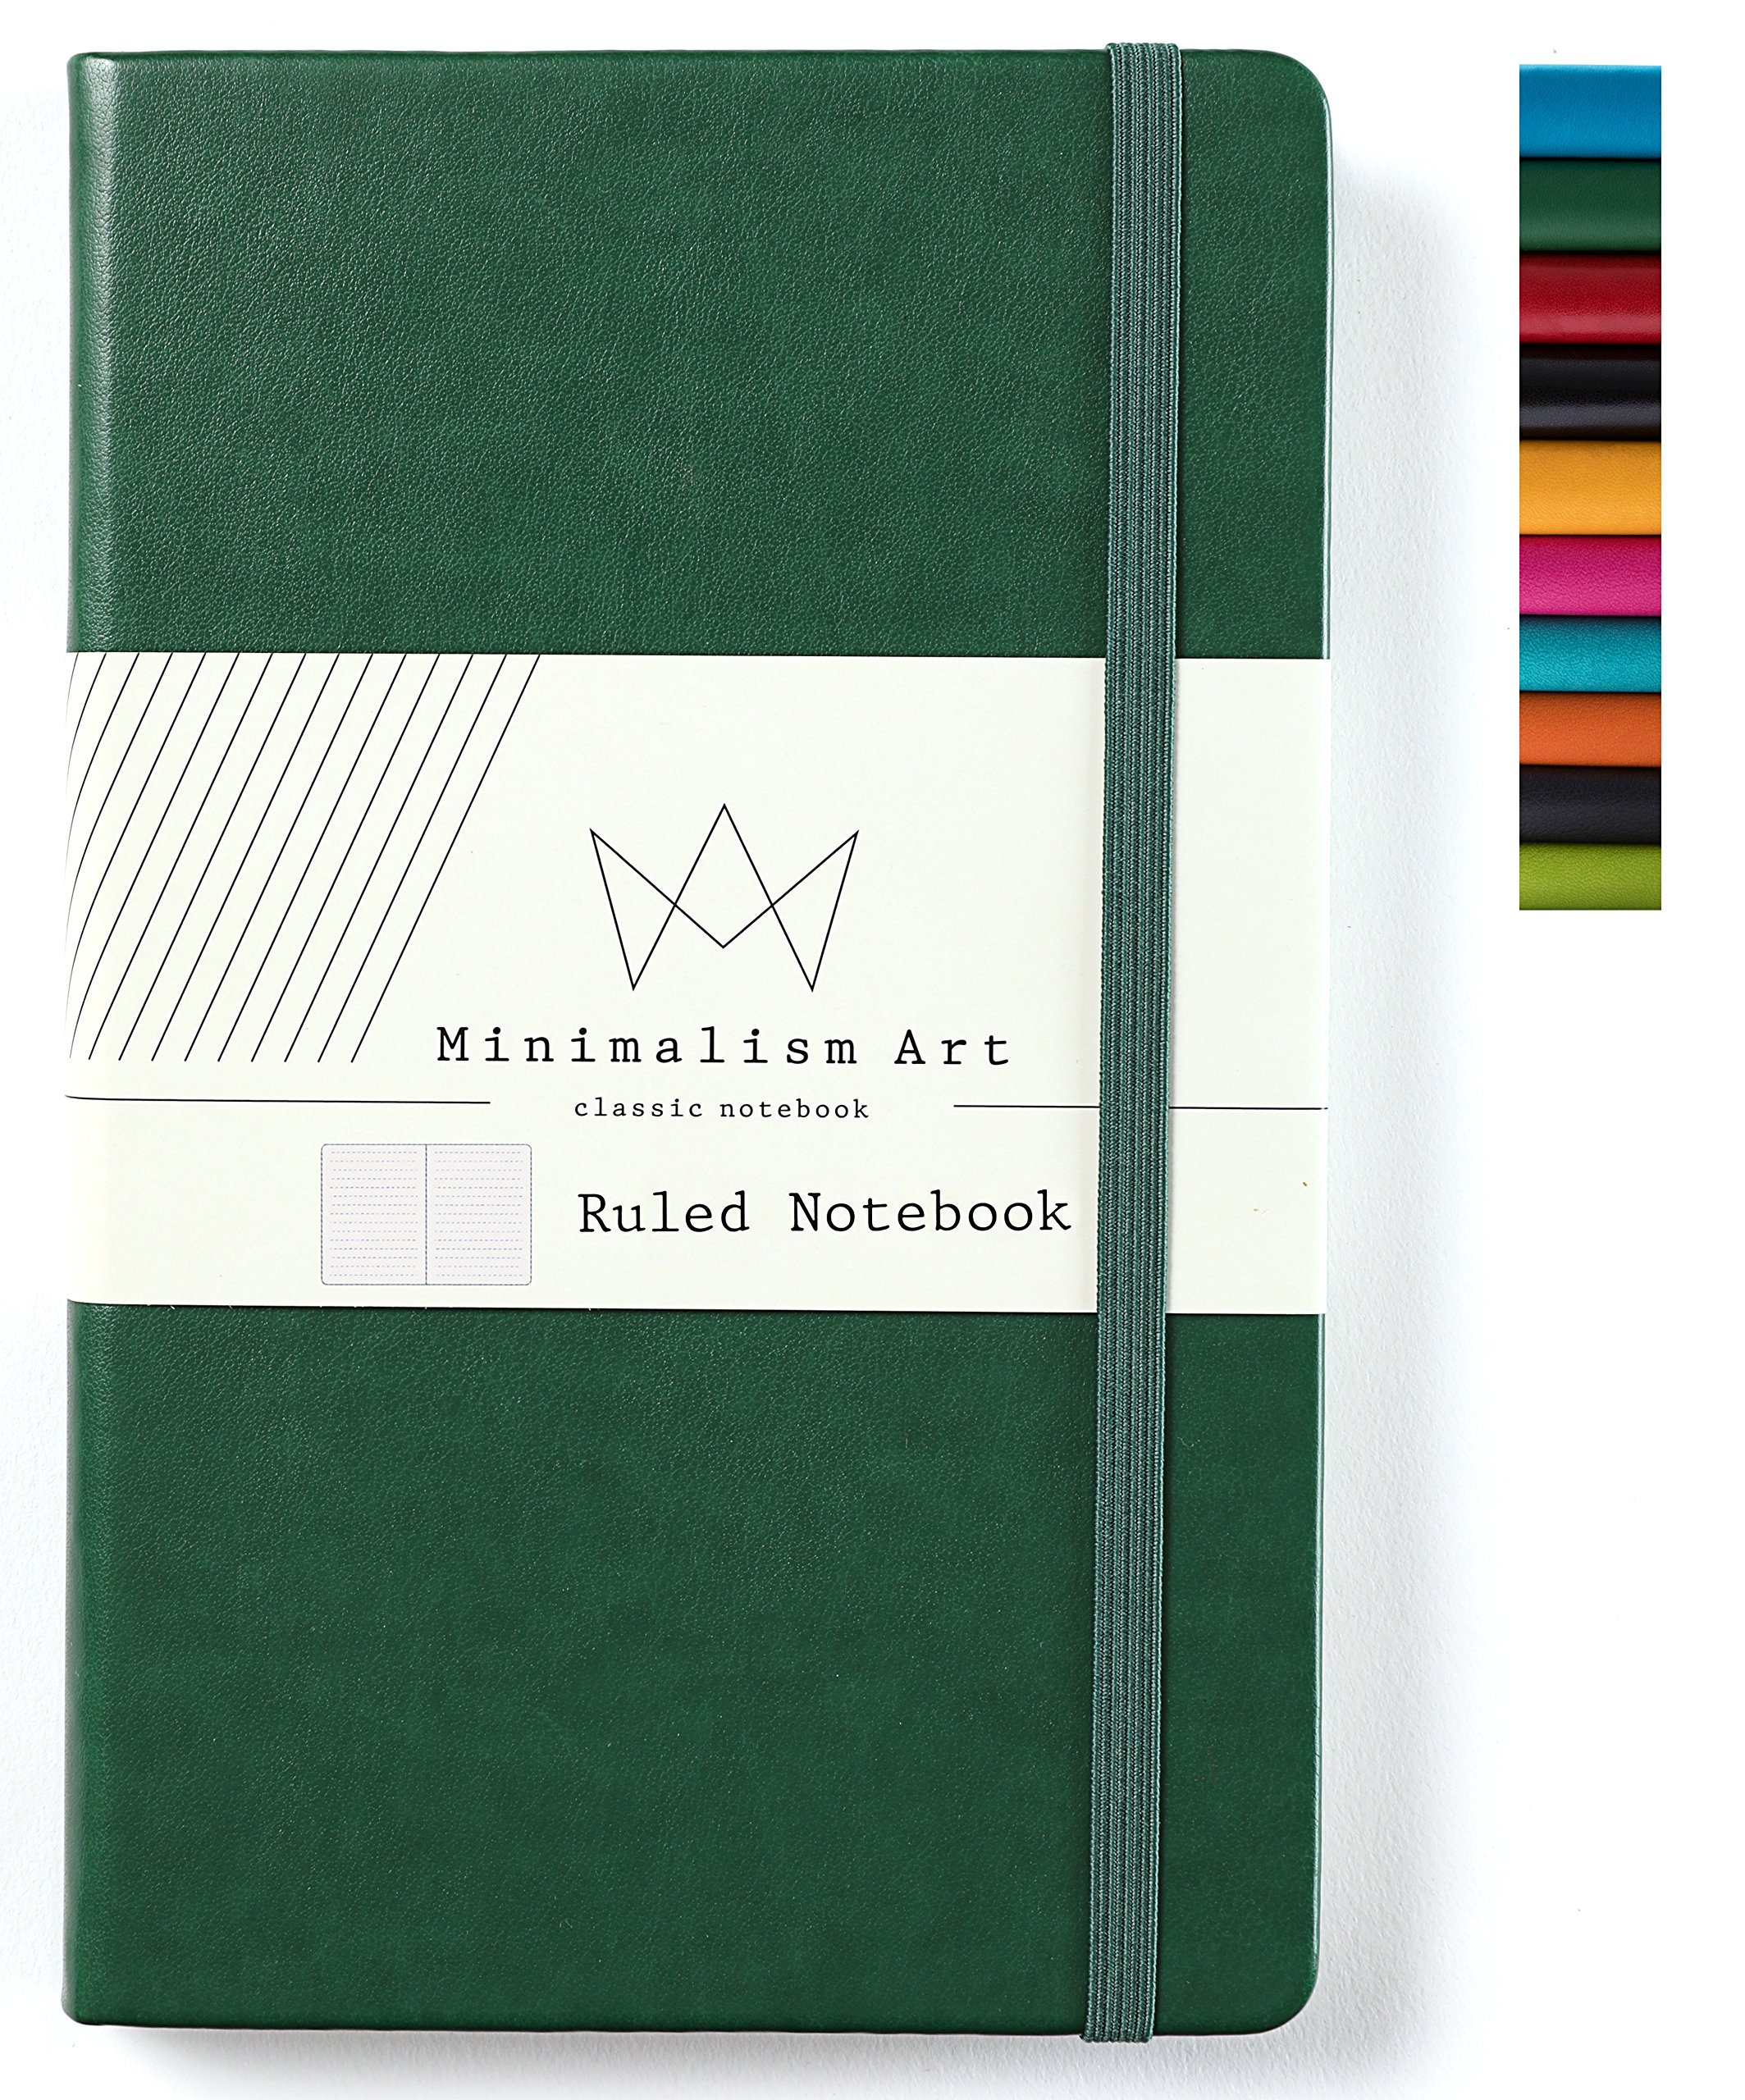 Minimalism Art | Classic Notebook Journal, Size: 5'' X 8.3'', A5, Green, Ruled/Lined Page, 192 Pages, Hard Cover/Fine PU Leather, Inner Pocket, Quality Paper - 100gsm | Designed in San Francisco